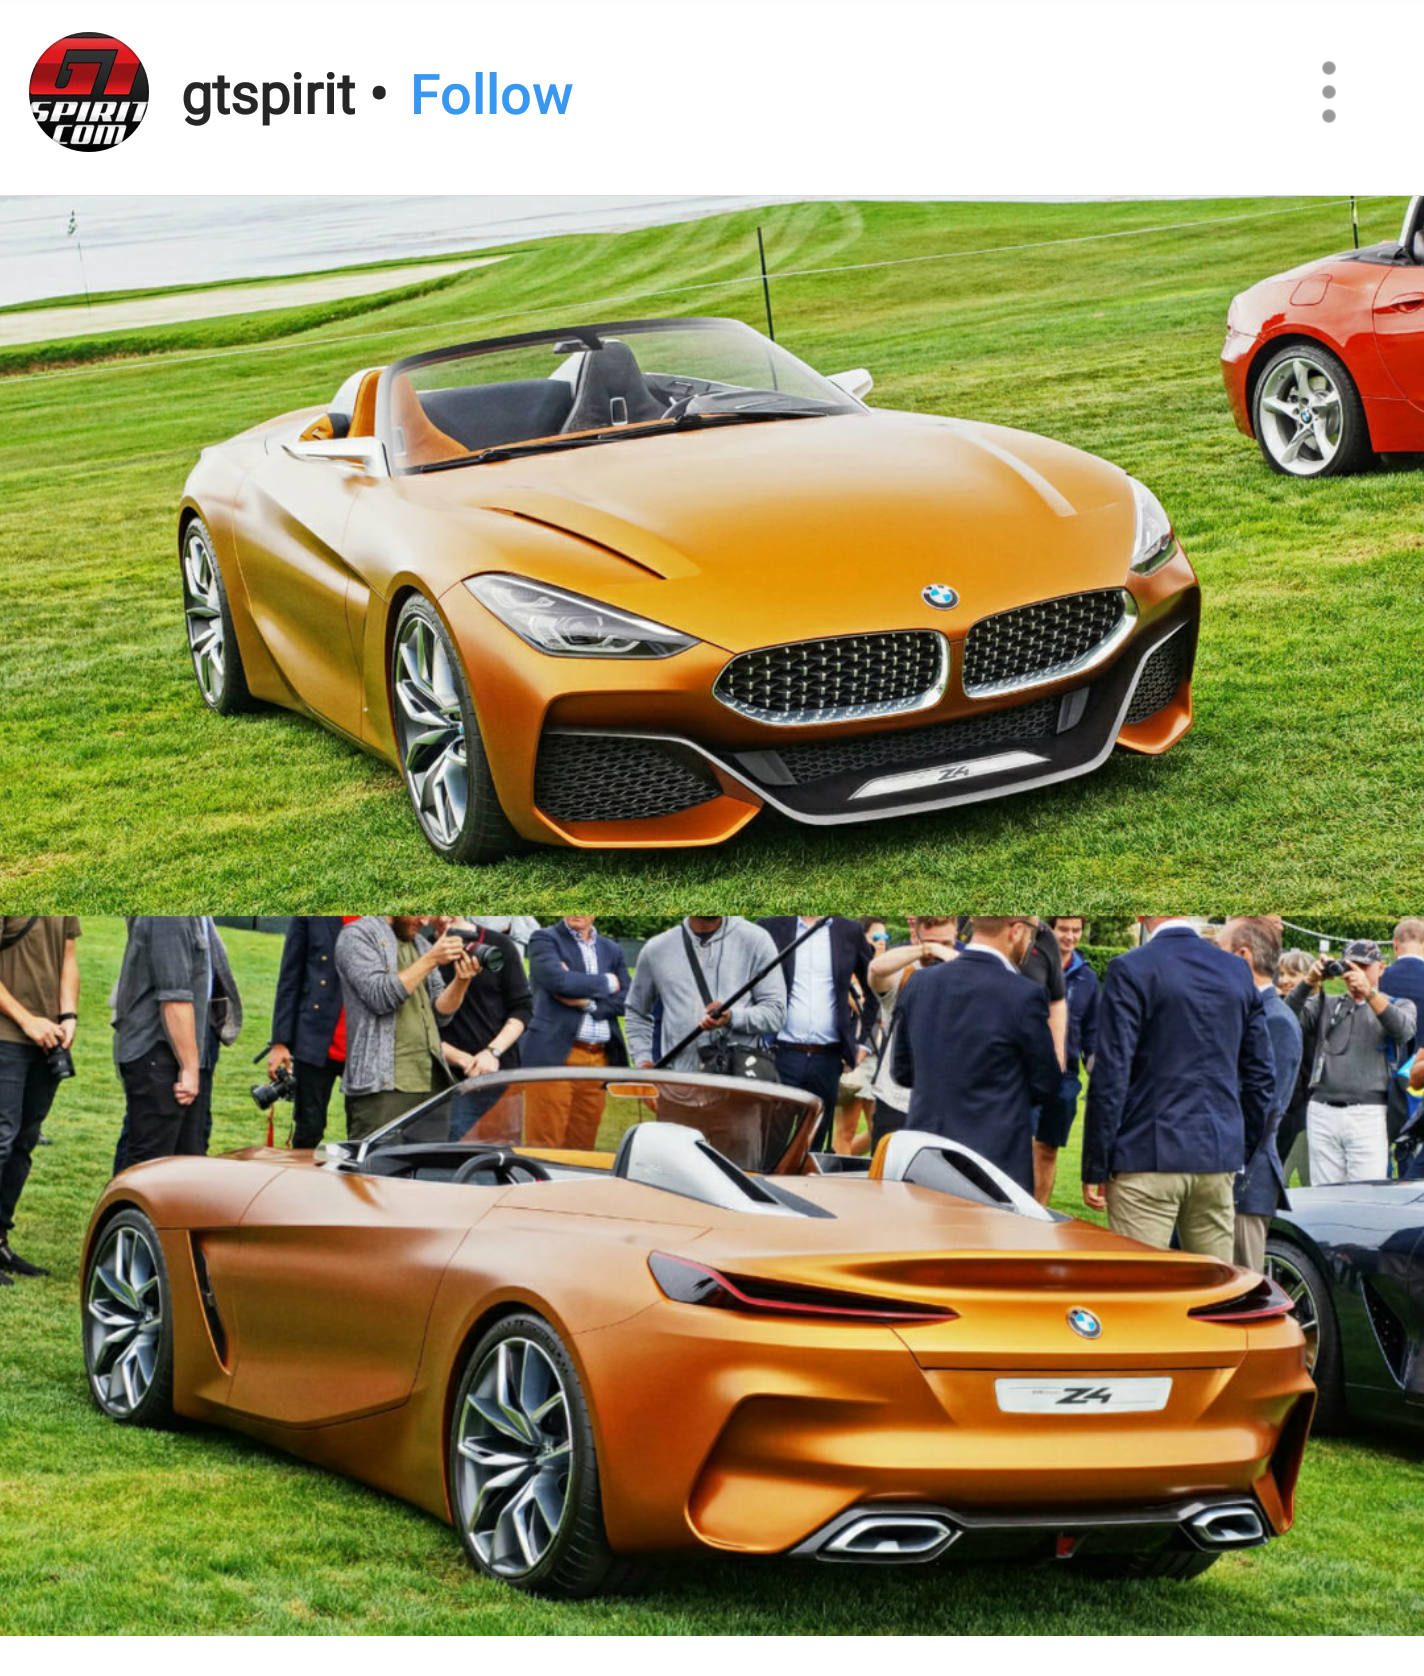 The Collection Monterey Car Week Instagram Day Recap - Car meets near me